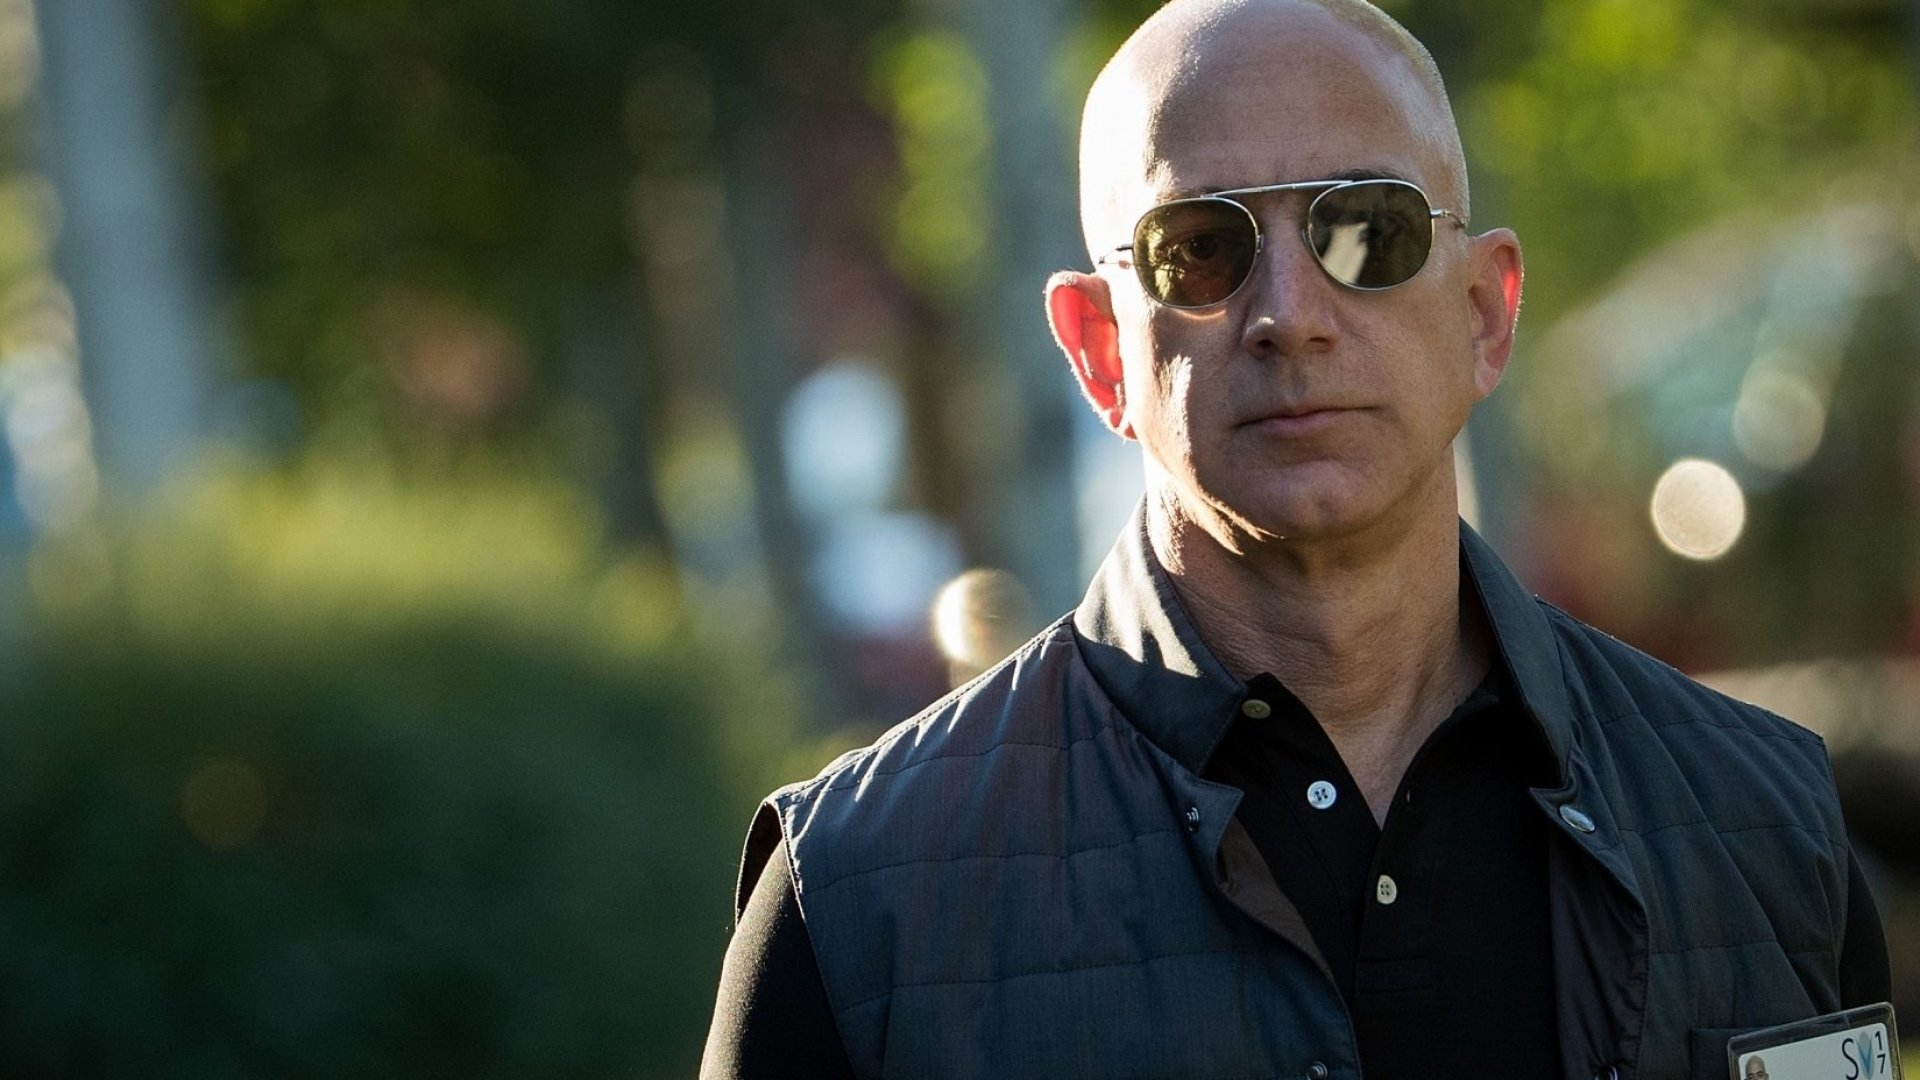 Jeff Bezos Made $6.2 Billion in 5 Minutes and Became the World's Richest Person (How Was Your Thursday?)